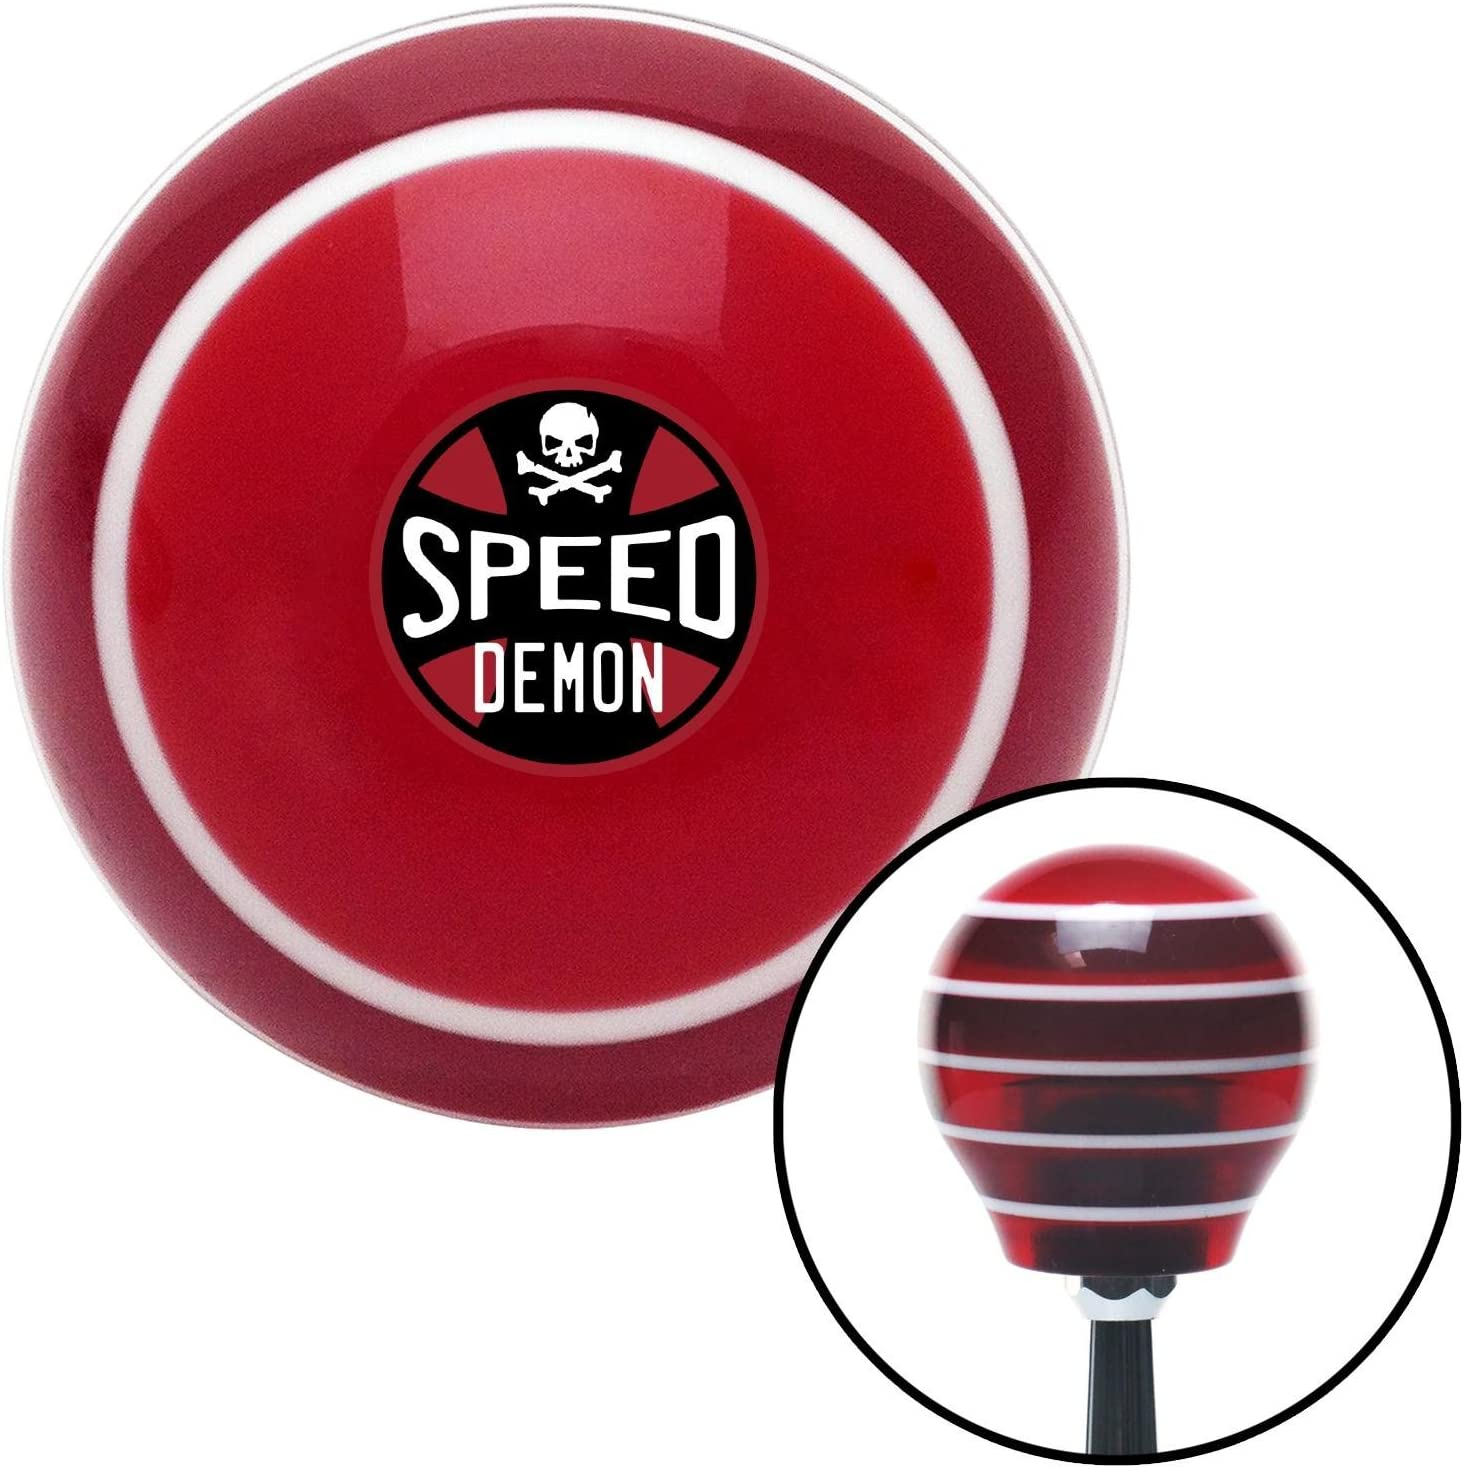 American Shifter 31502 Ivory Shift Knob with 16mm x 1.5 Insert Red I 3 Nissan